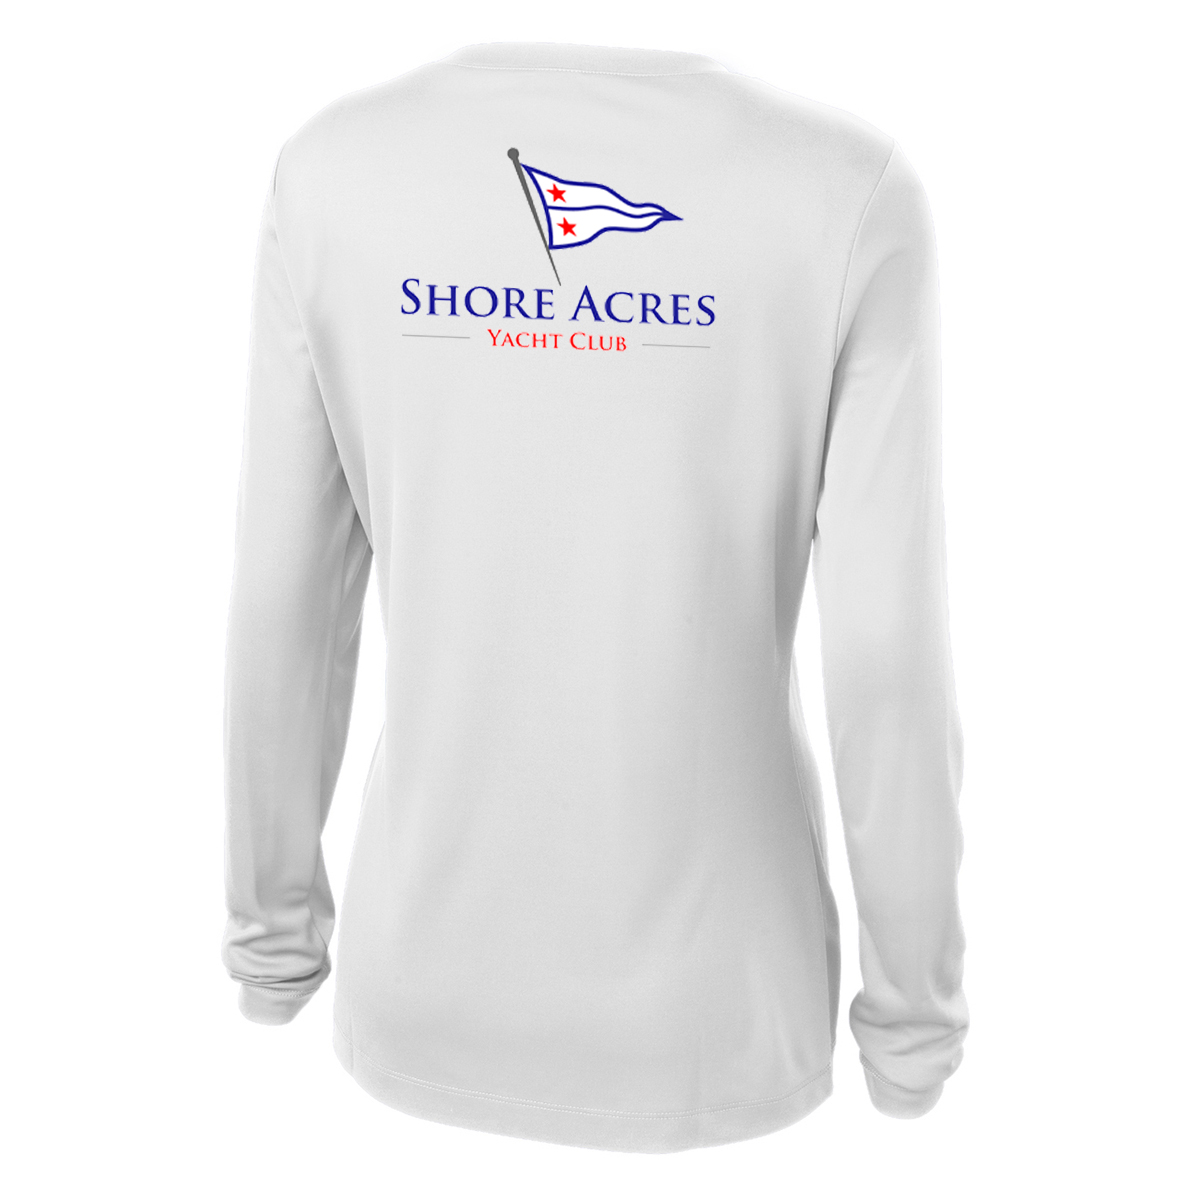 SHORE ACRES YC - W'S L/S TECH TEE